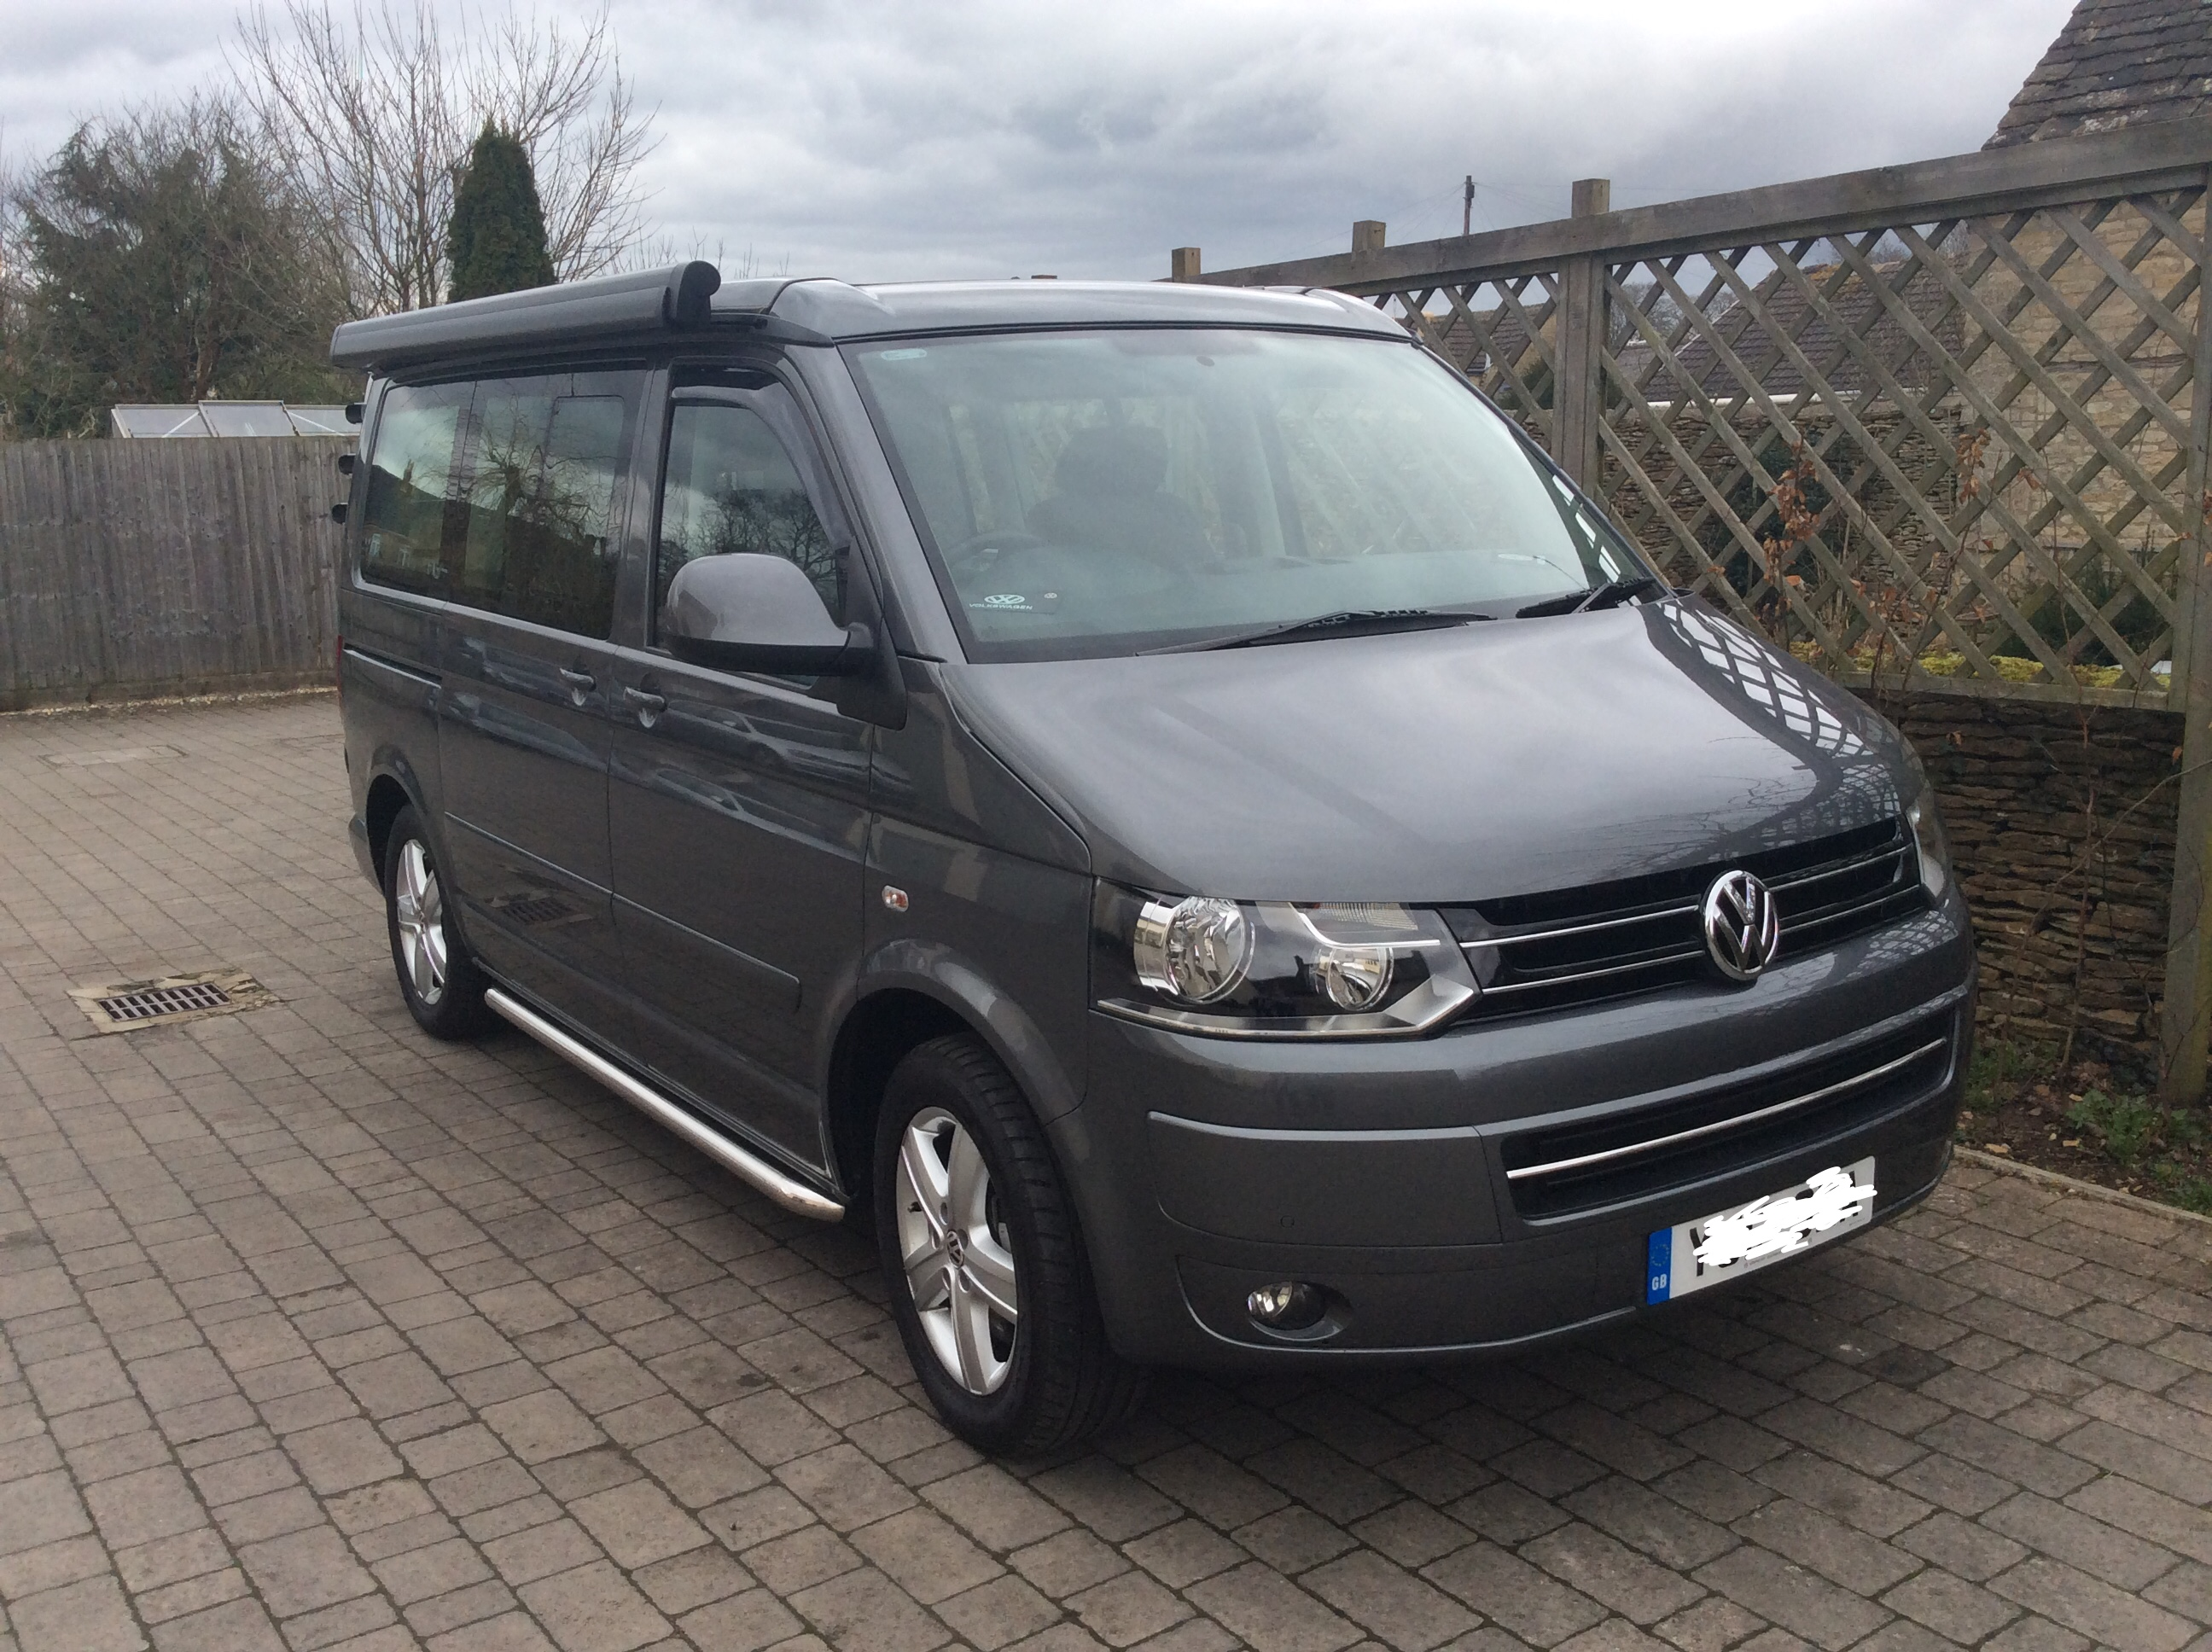 vw california se 2 0tdi 180bhp vwbus t4 t5. Black Bedroom Furniture Sets. Home Design Ideas